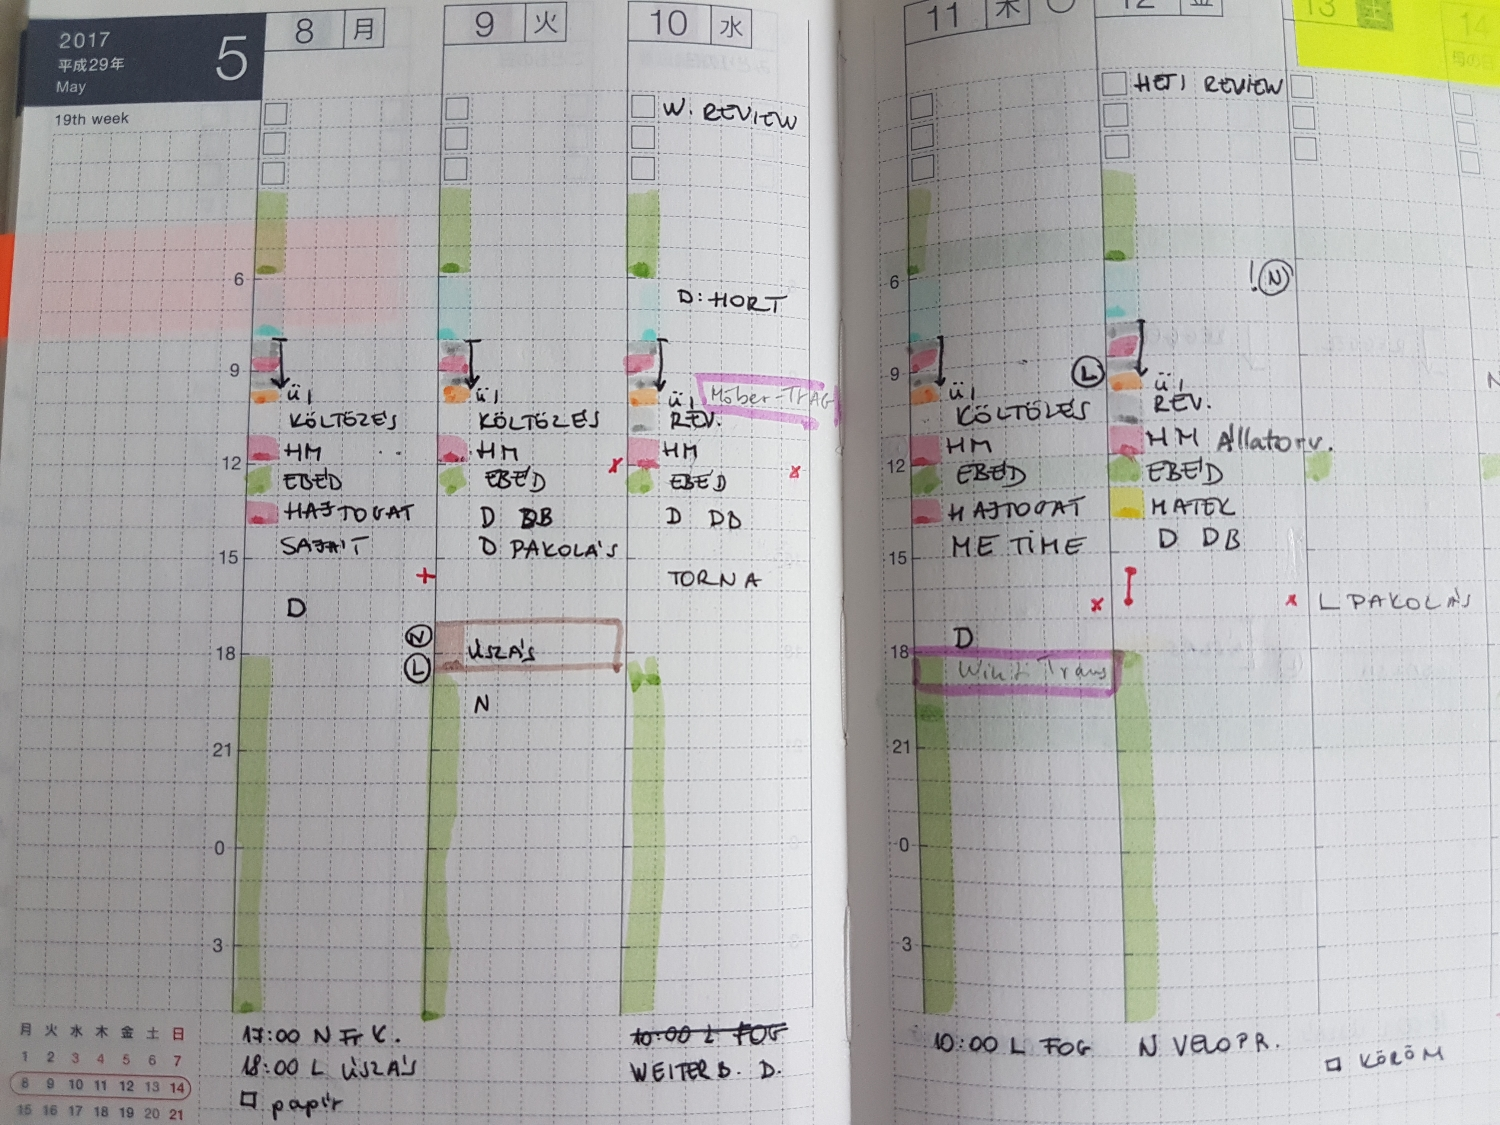 How to deal with the not time sensitive tasks? - Weekly schedule